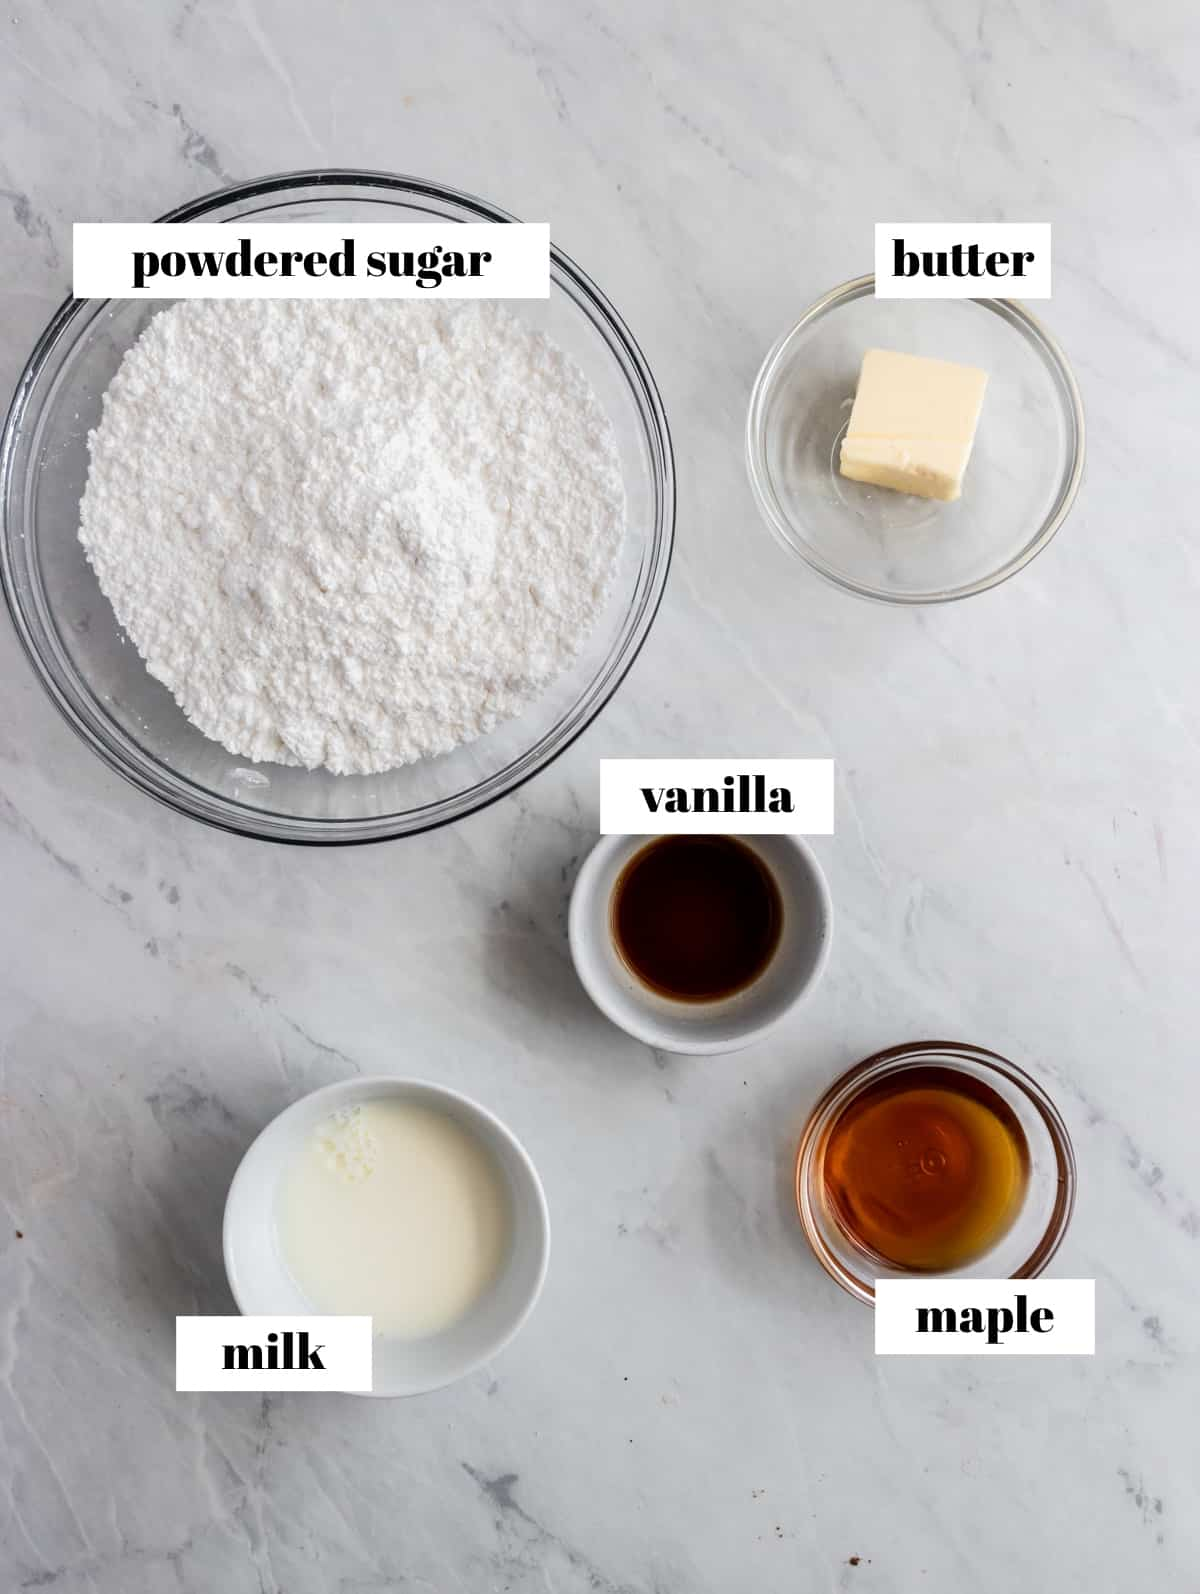 Powdered sugar, butter, maple and other ingredients for icing.